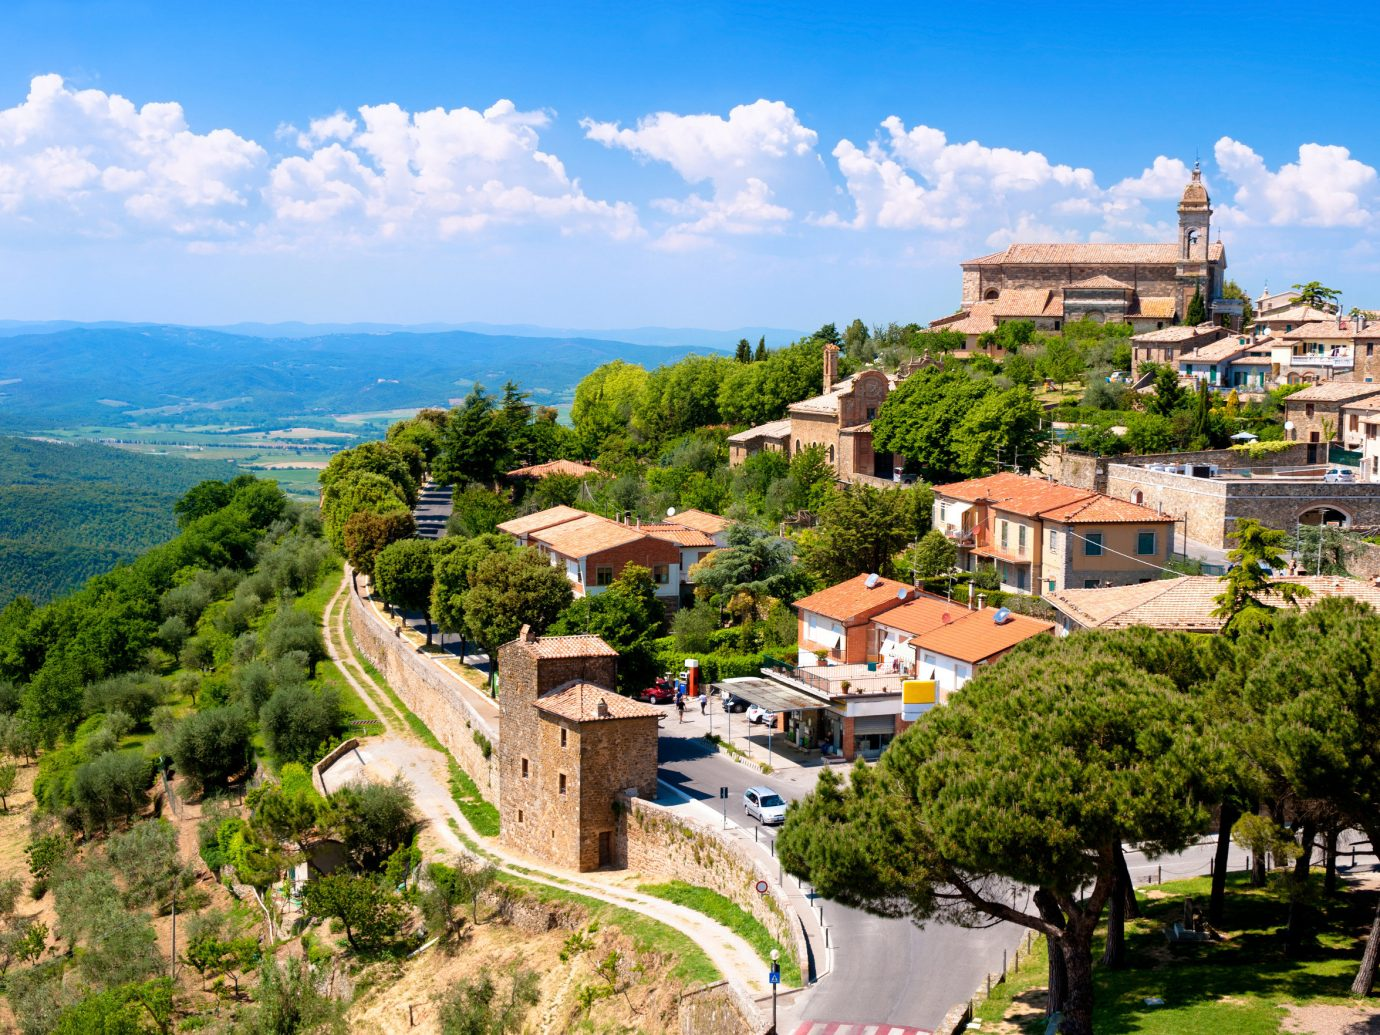 Italy Trip Ideas sky mountain village landmark tree City Village bird's eye view mountain mount scenery real estate tourism estate hill station plant tourist attraction hill landscape mountain range historic site